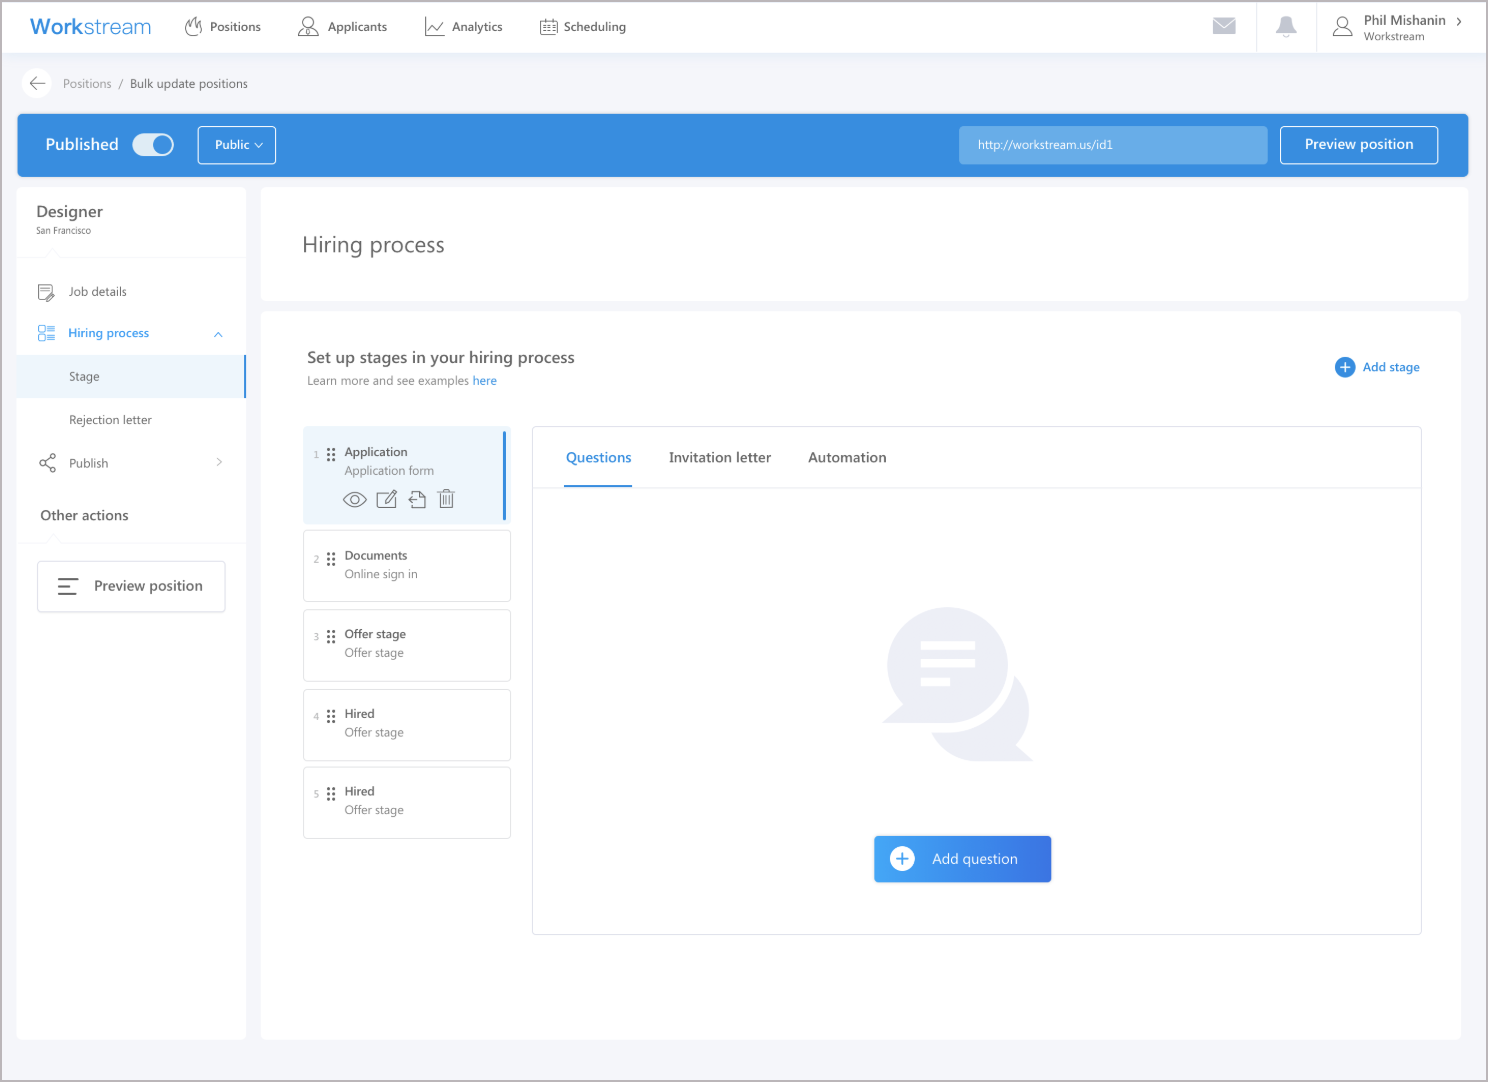 Workstream applicant tracking system customizable hiring stages